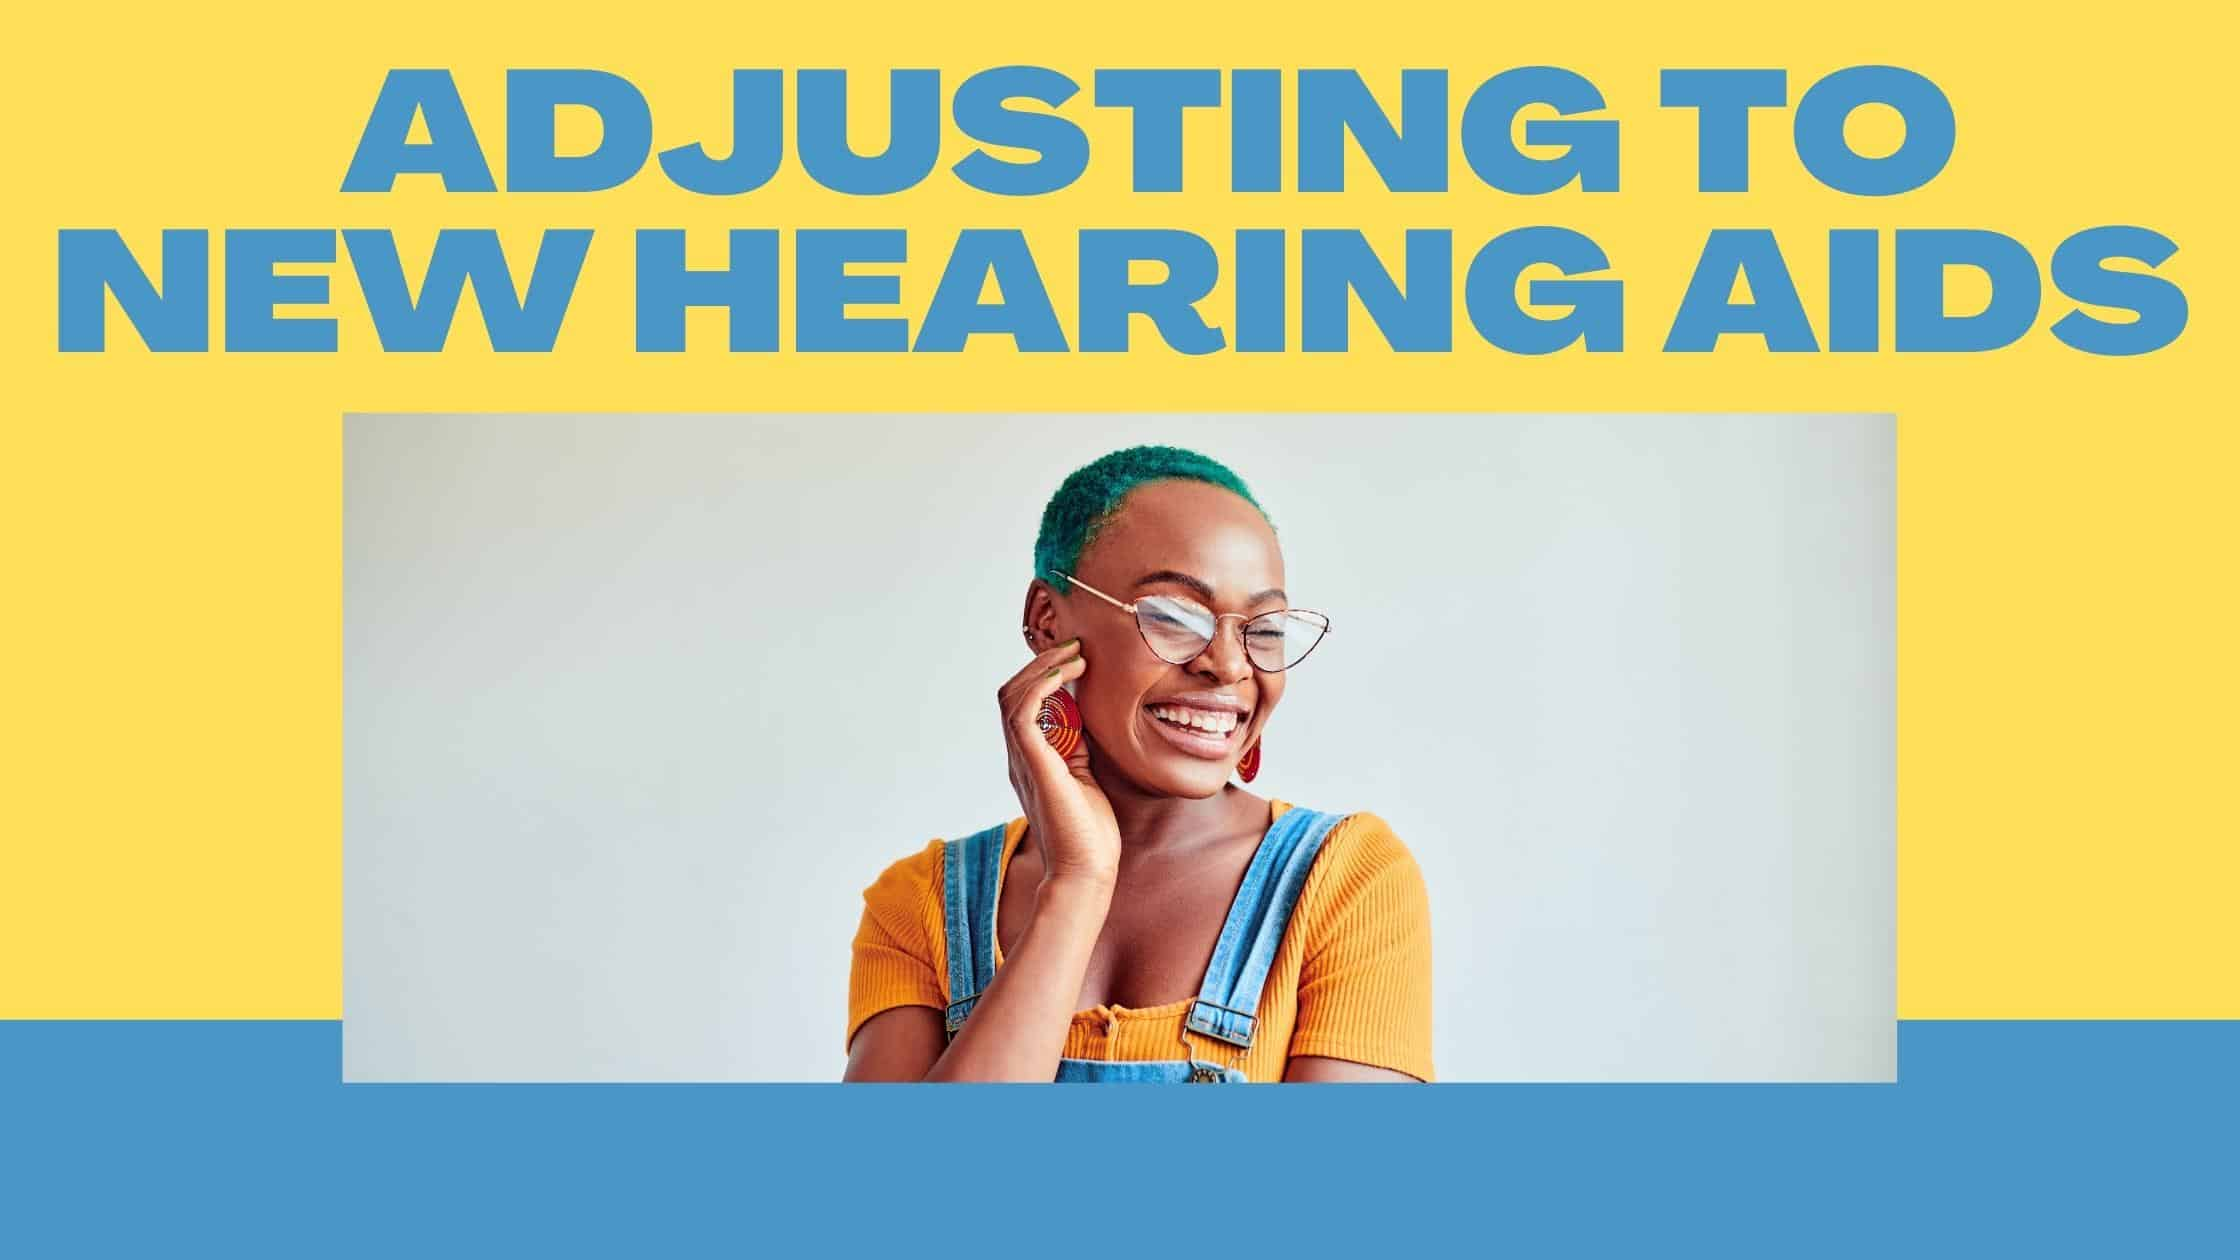 Adjusting to New Hearing Aids